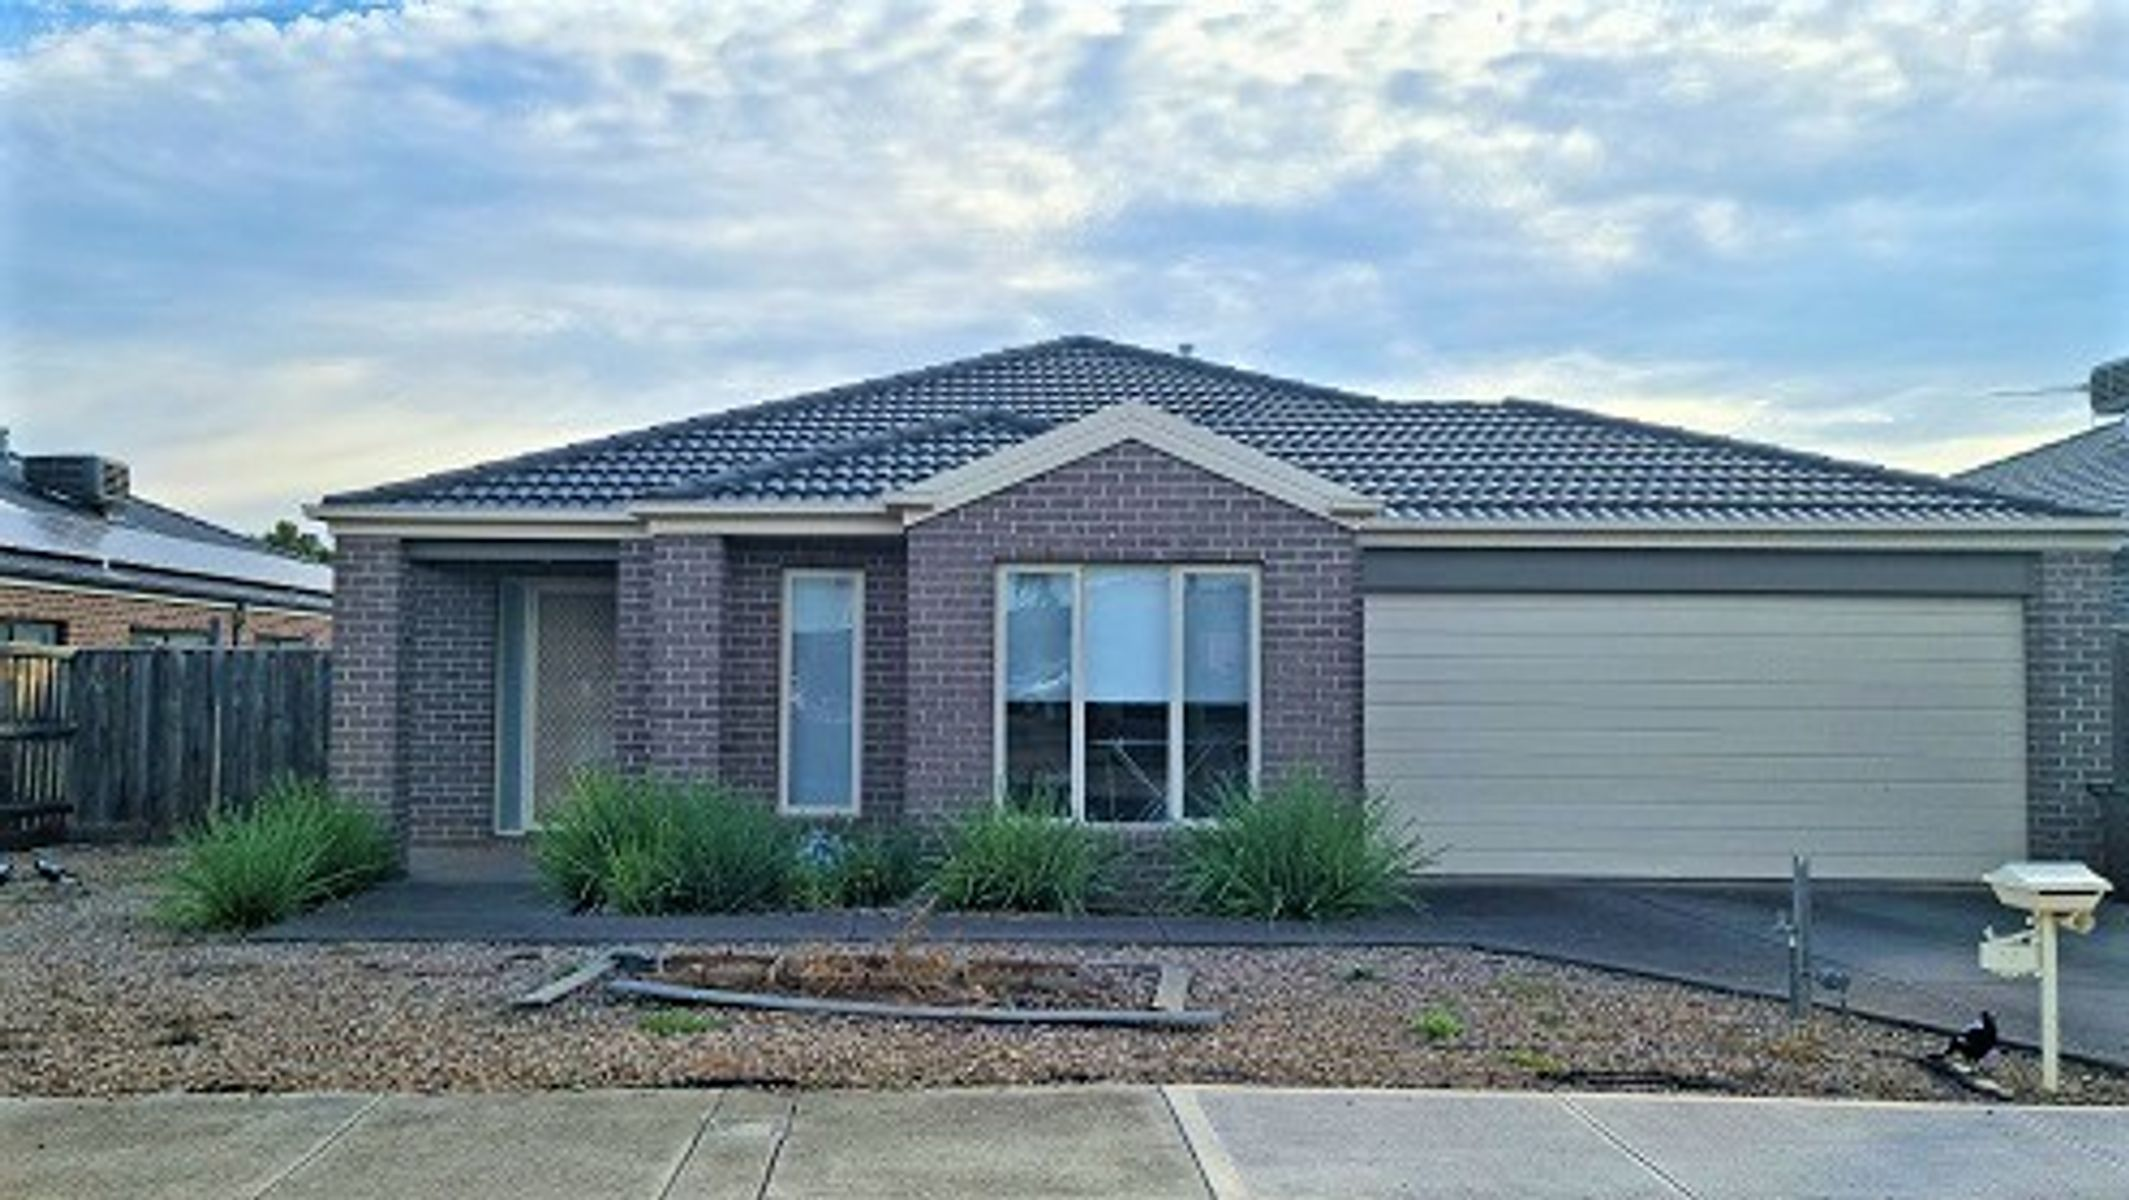 13 Blossom Avenue, Harkness, VIC 3337